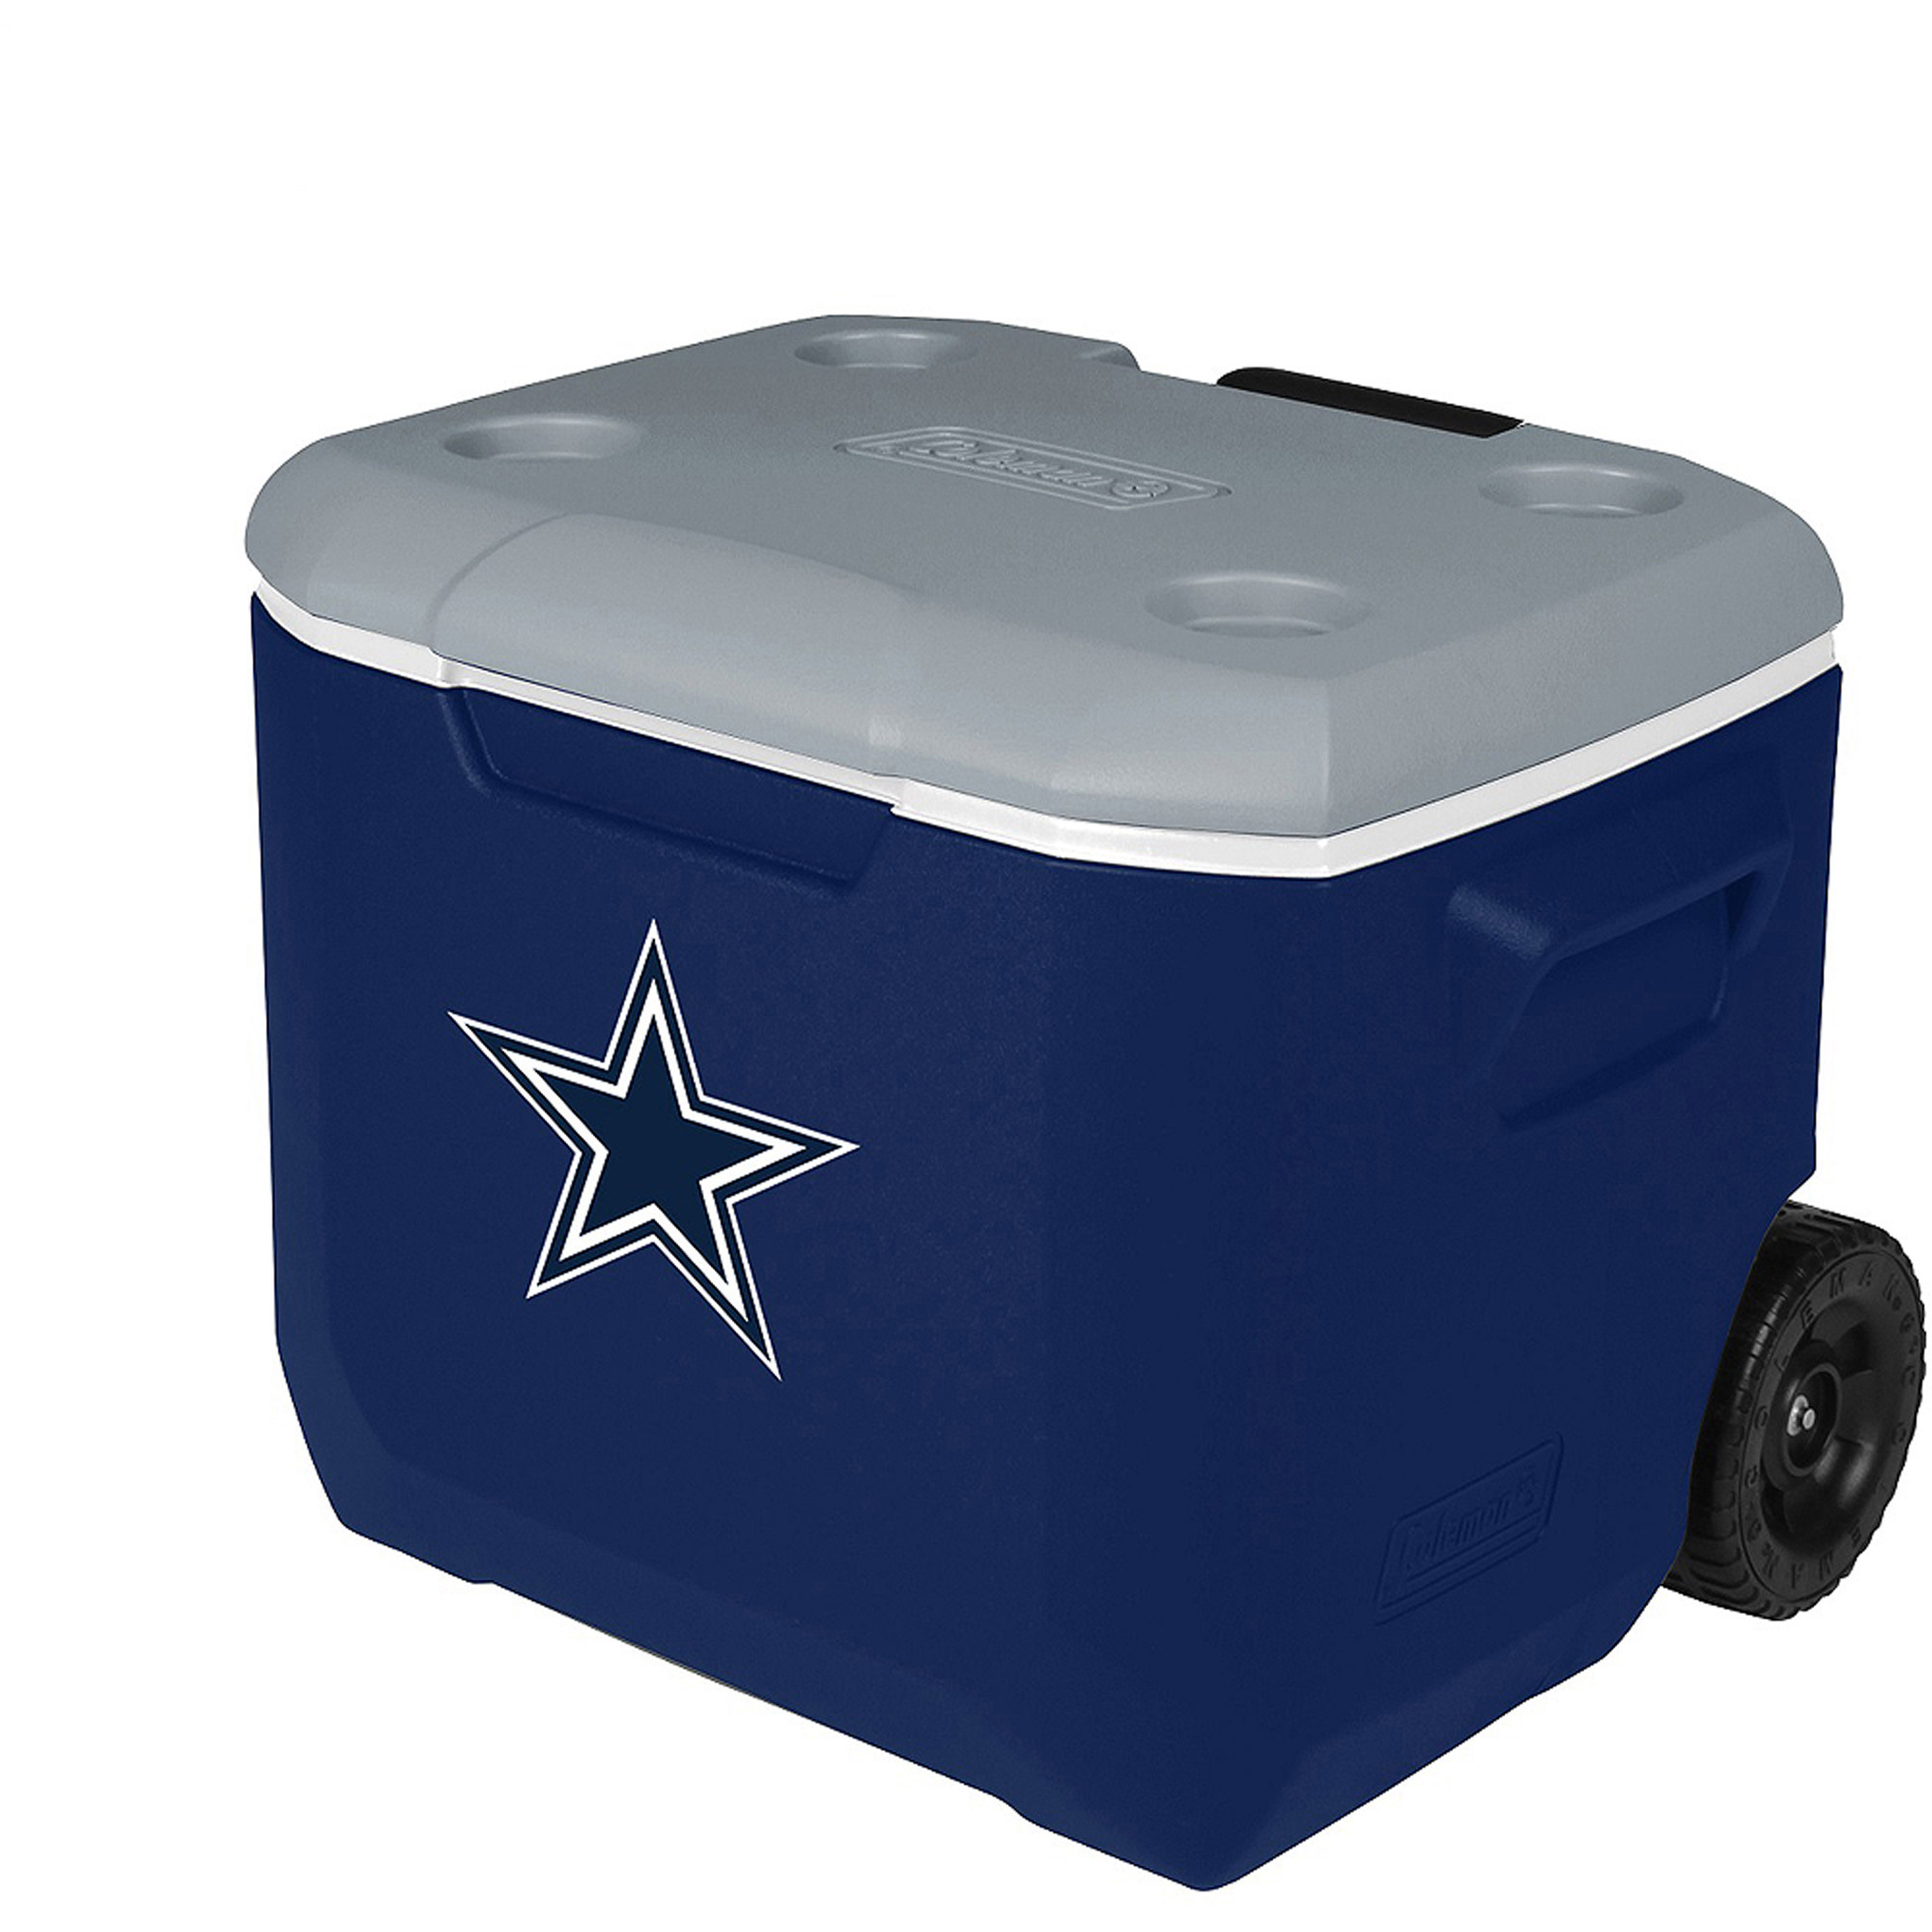 Coleman Cooler 60 Quart Performance NFL Dallas Cowboys